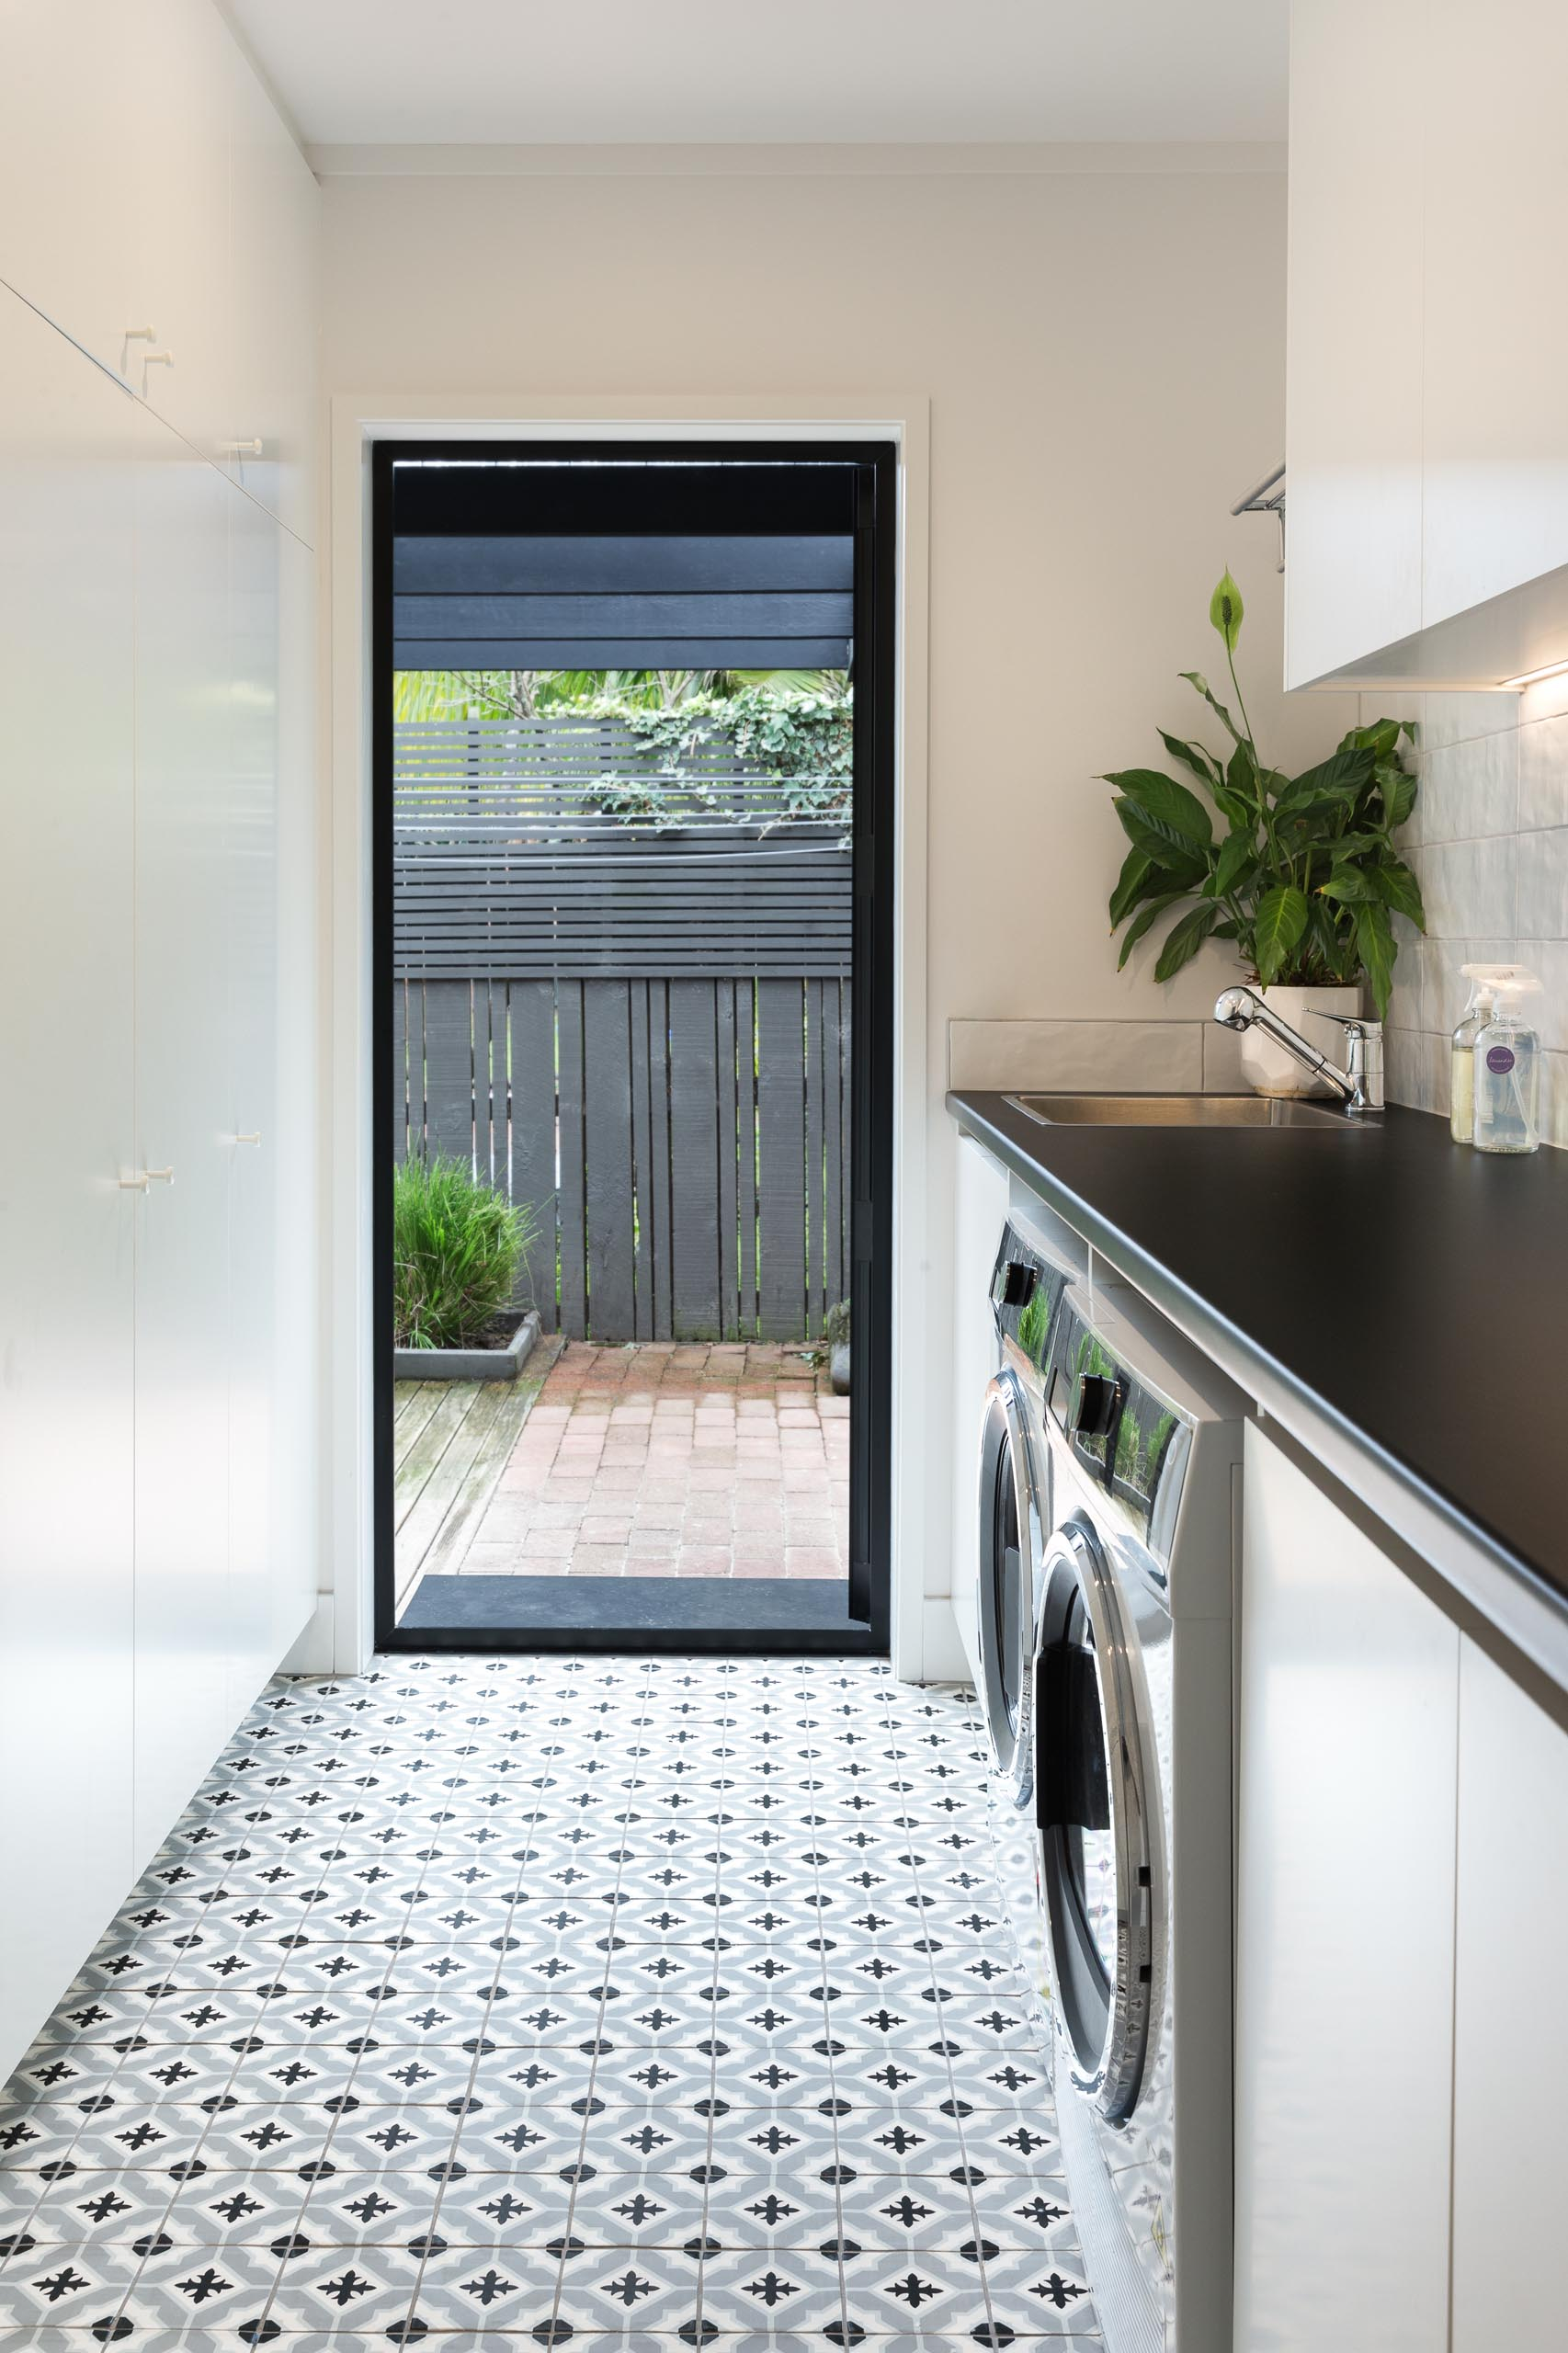 This modern laundry room has been designed with patterned floor tiles, floor-to-ceiling cabinets that add plenty of storage, and a black countertop travels across both the washing machine and dryer, and complements the black door frame.